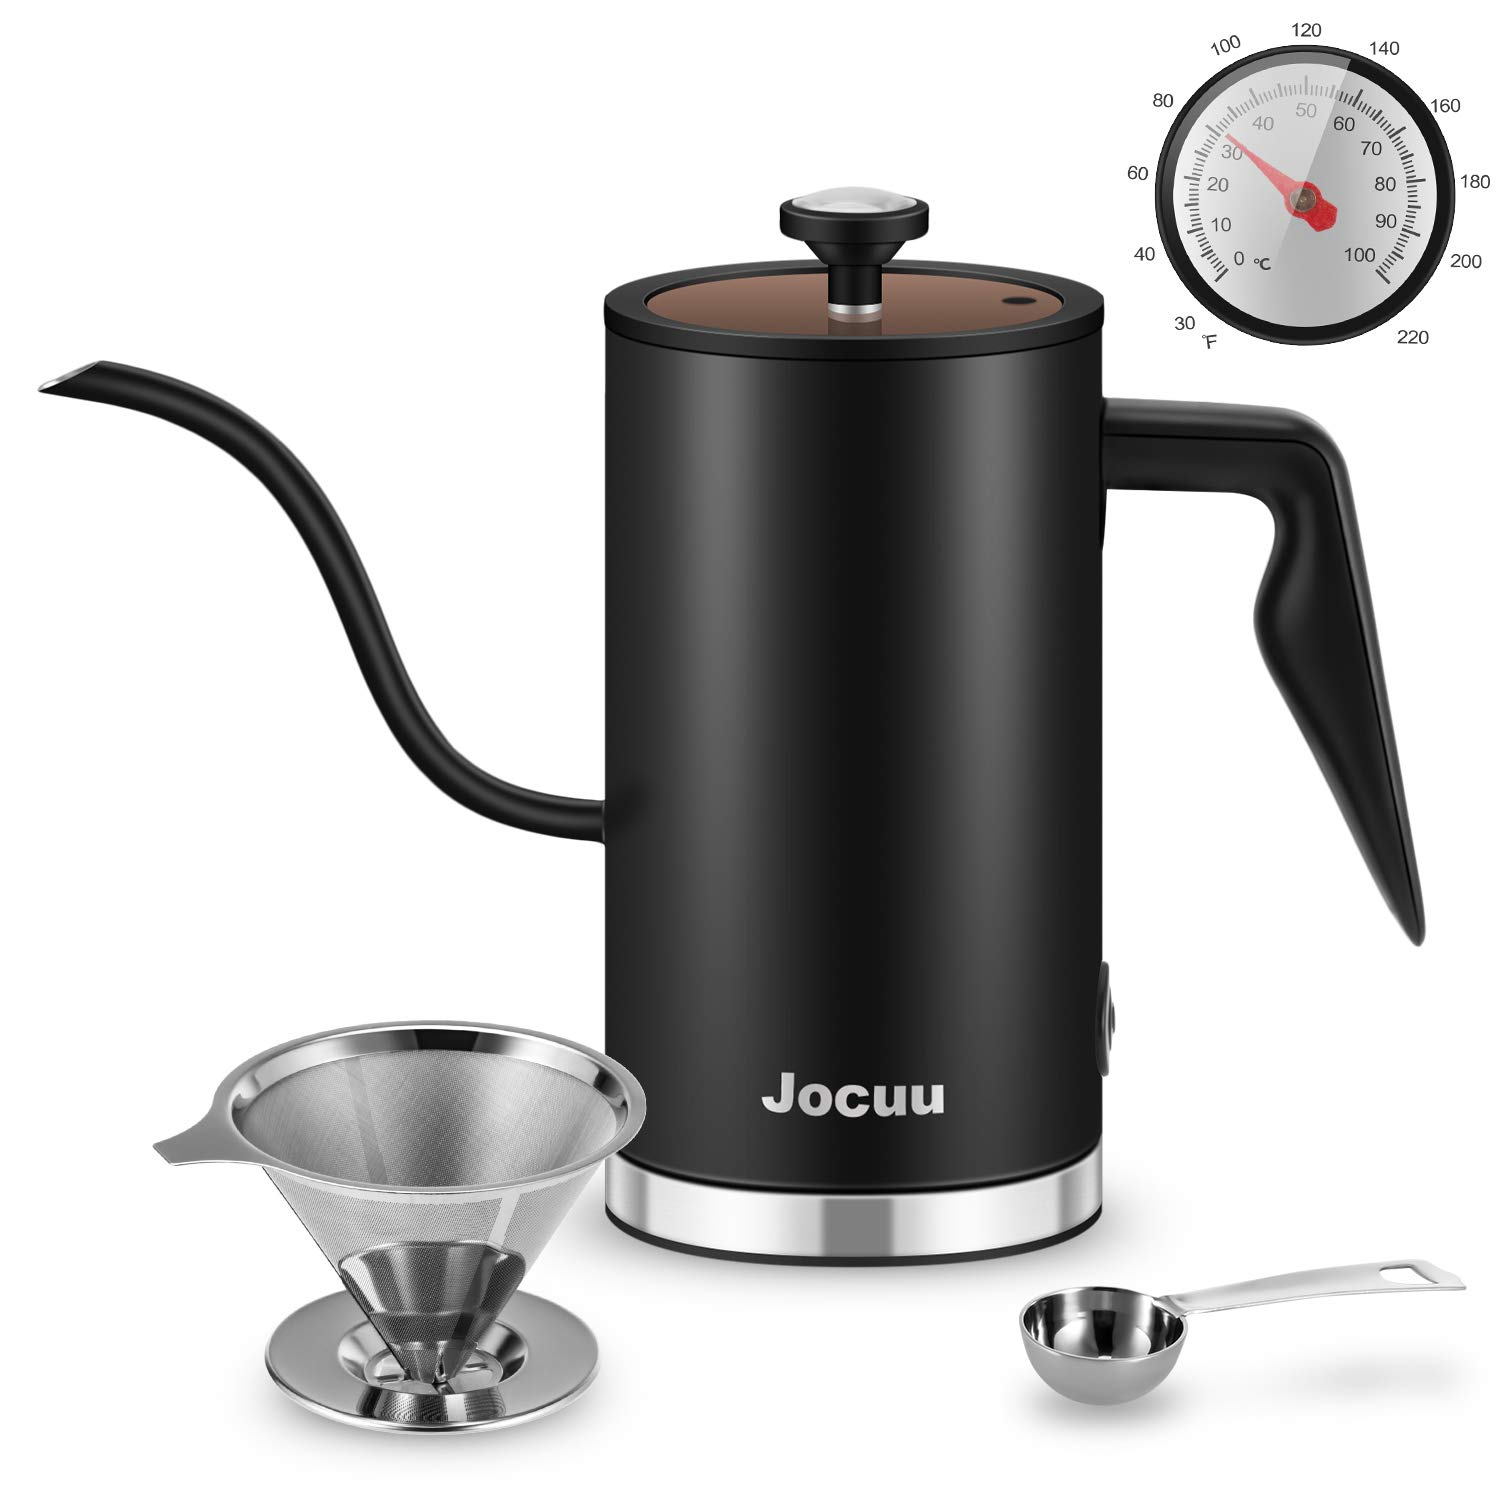 Jocuu Gooseneck Electric Hot Water Kettle Drip Kettle 500 Millilitre 304 Stainless Steel with Thermometer and Status Indicator for Making Tea, Pour Over Coffee and Boiling Water